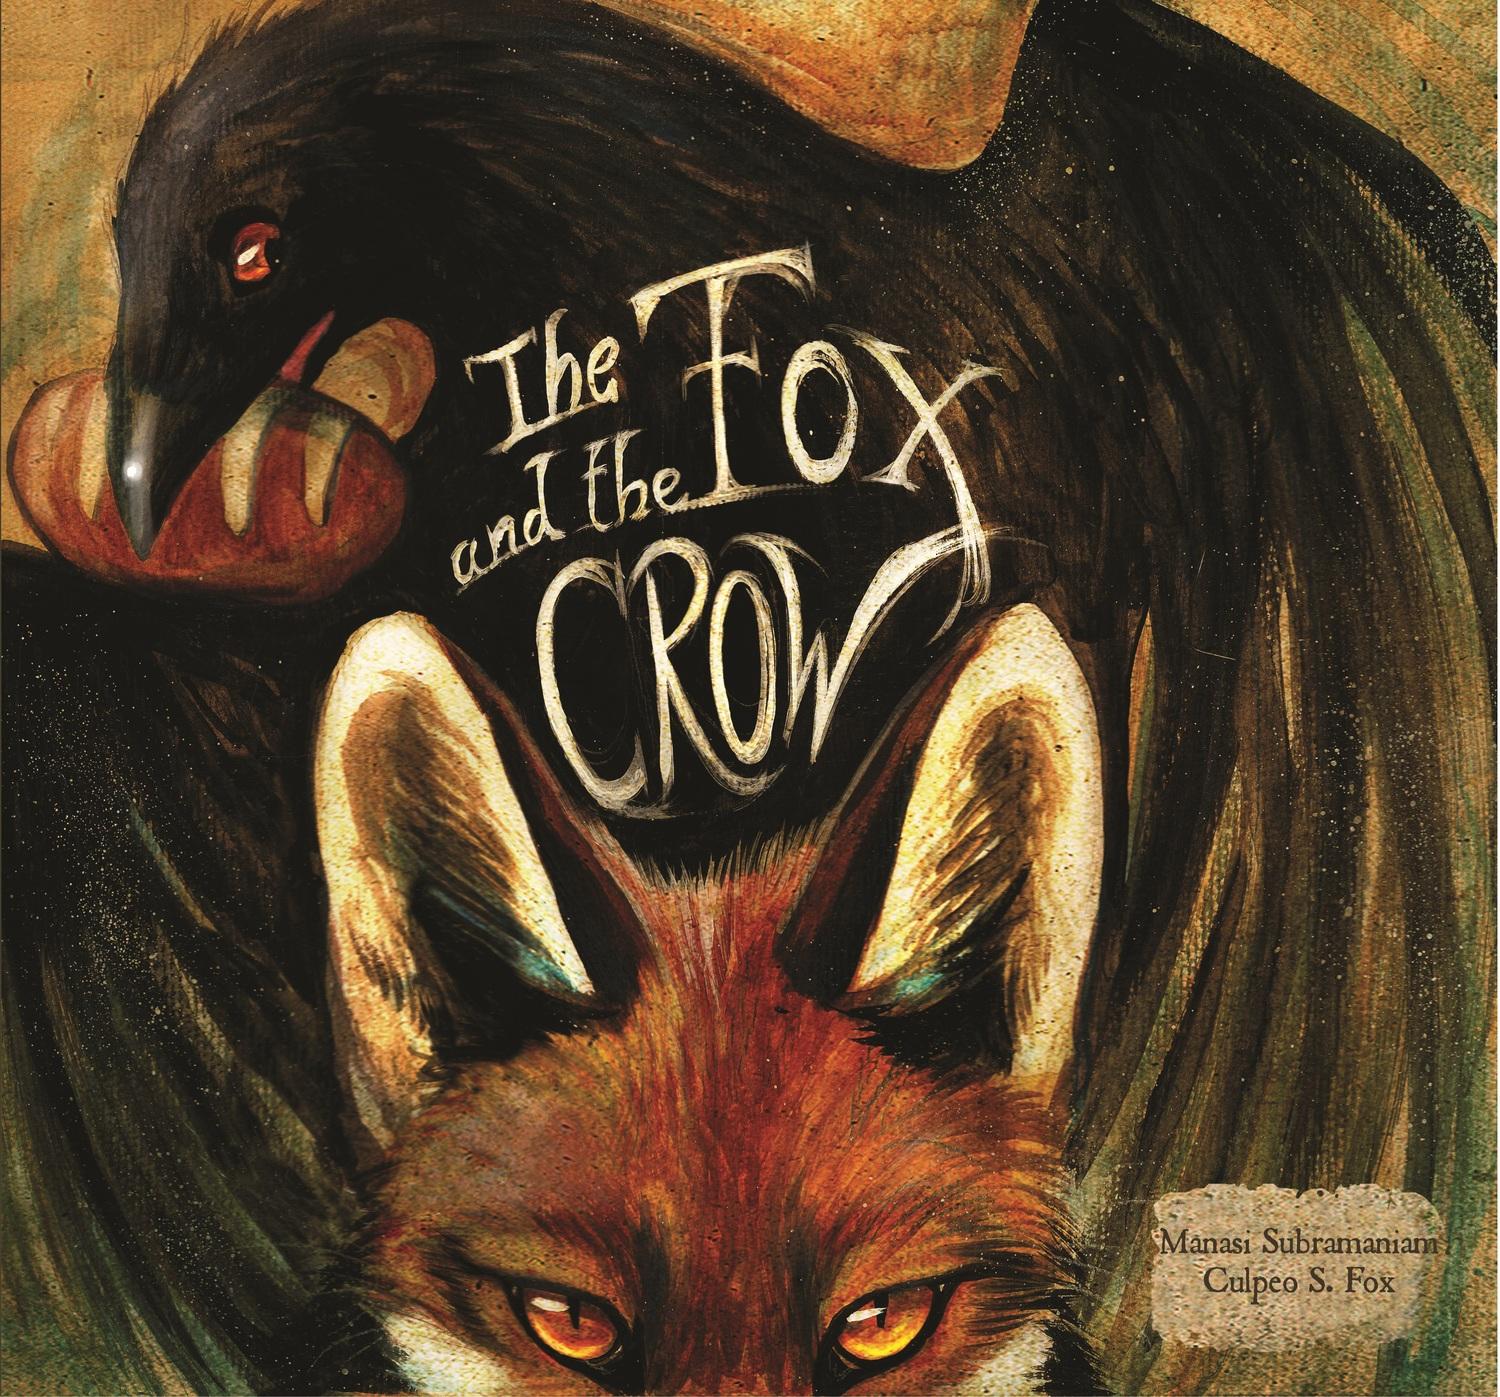 Childrens book and media review the fox and the crow